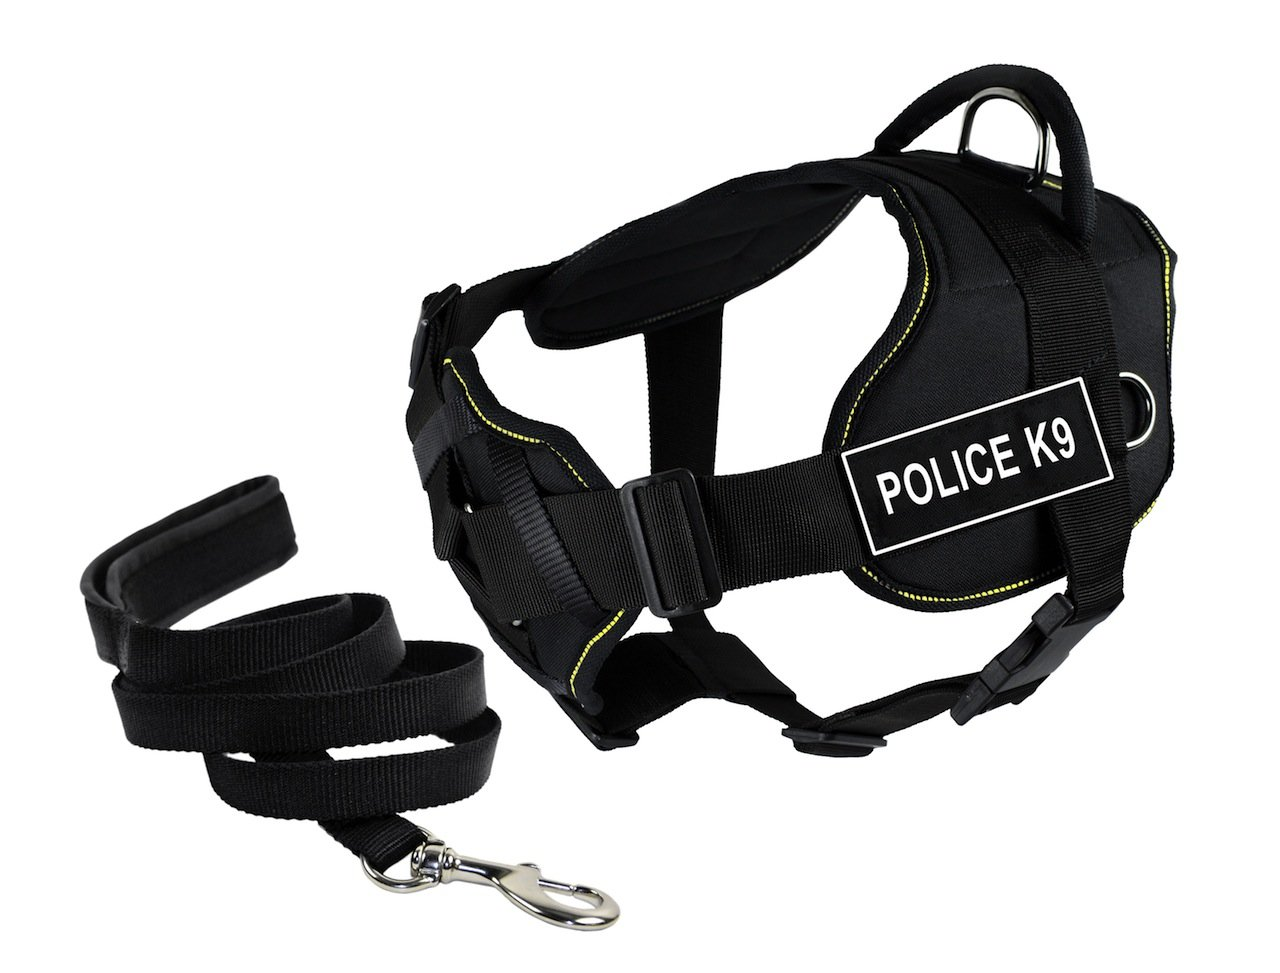 Dean & Tyler's DT Fun Chest Support POLICE K9 Harness, Small, with 6 ft Padded Puppy Leash.